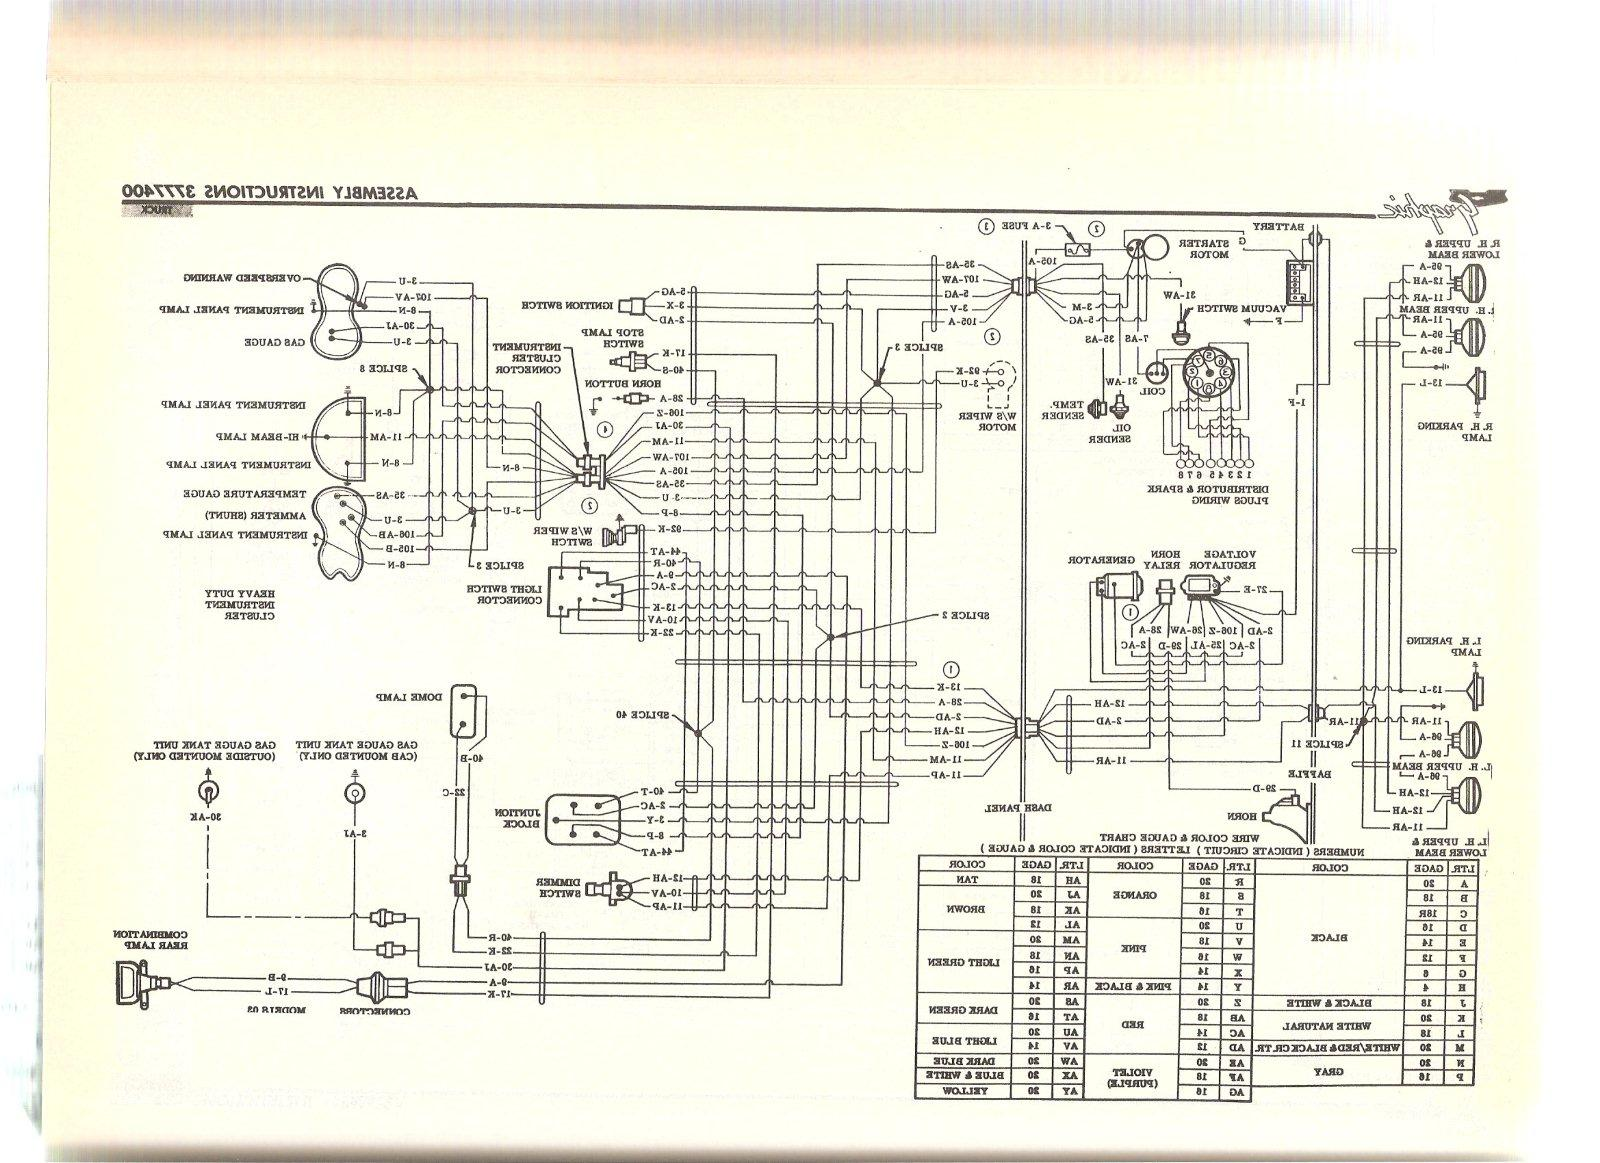 Wiring Diagram 1948 Chevy Truck Page 2 And Schematics Car Heeyoung S Blog With The Diagrams Rh Jeff Gordon Dupont1013 Blo Com Lincoln